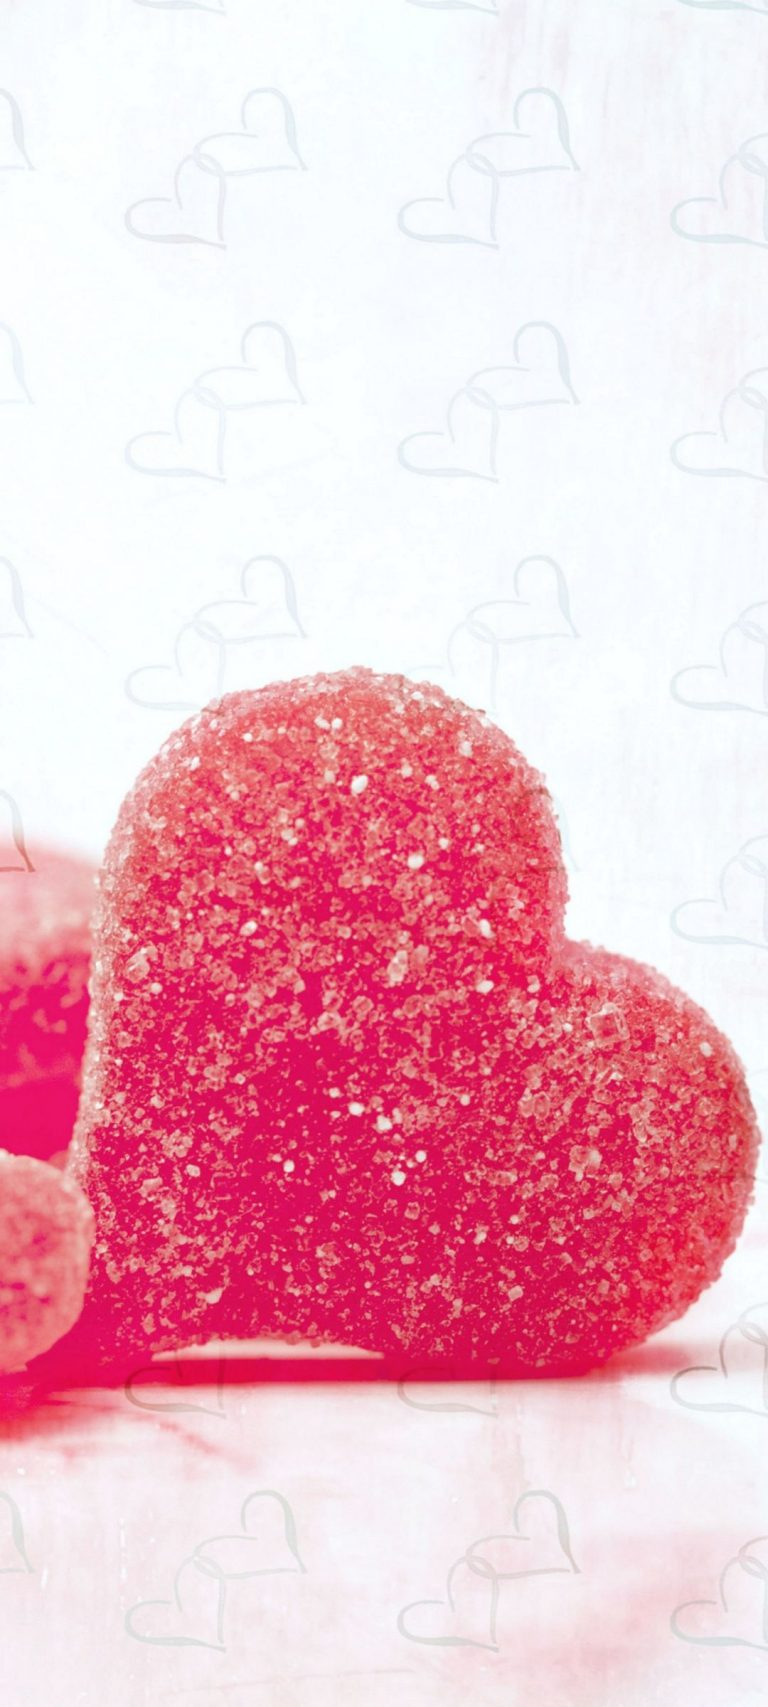 Hearts Candy Sugar 1080x2400 768x1707